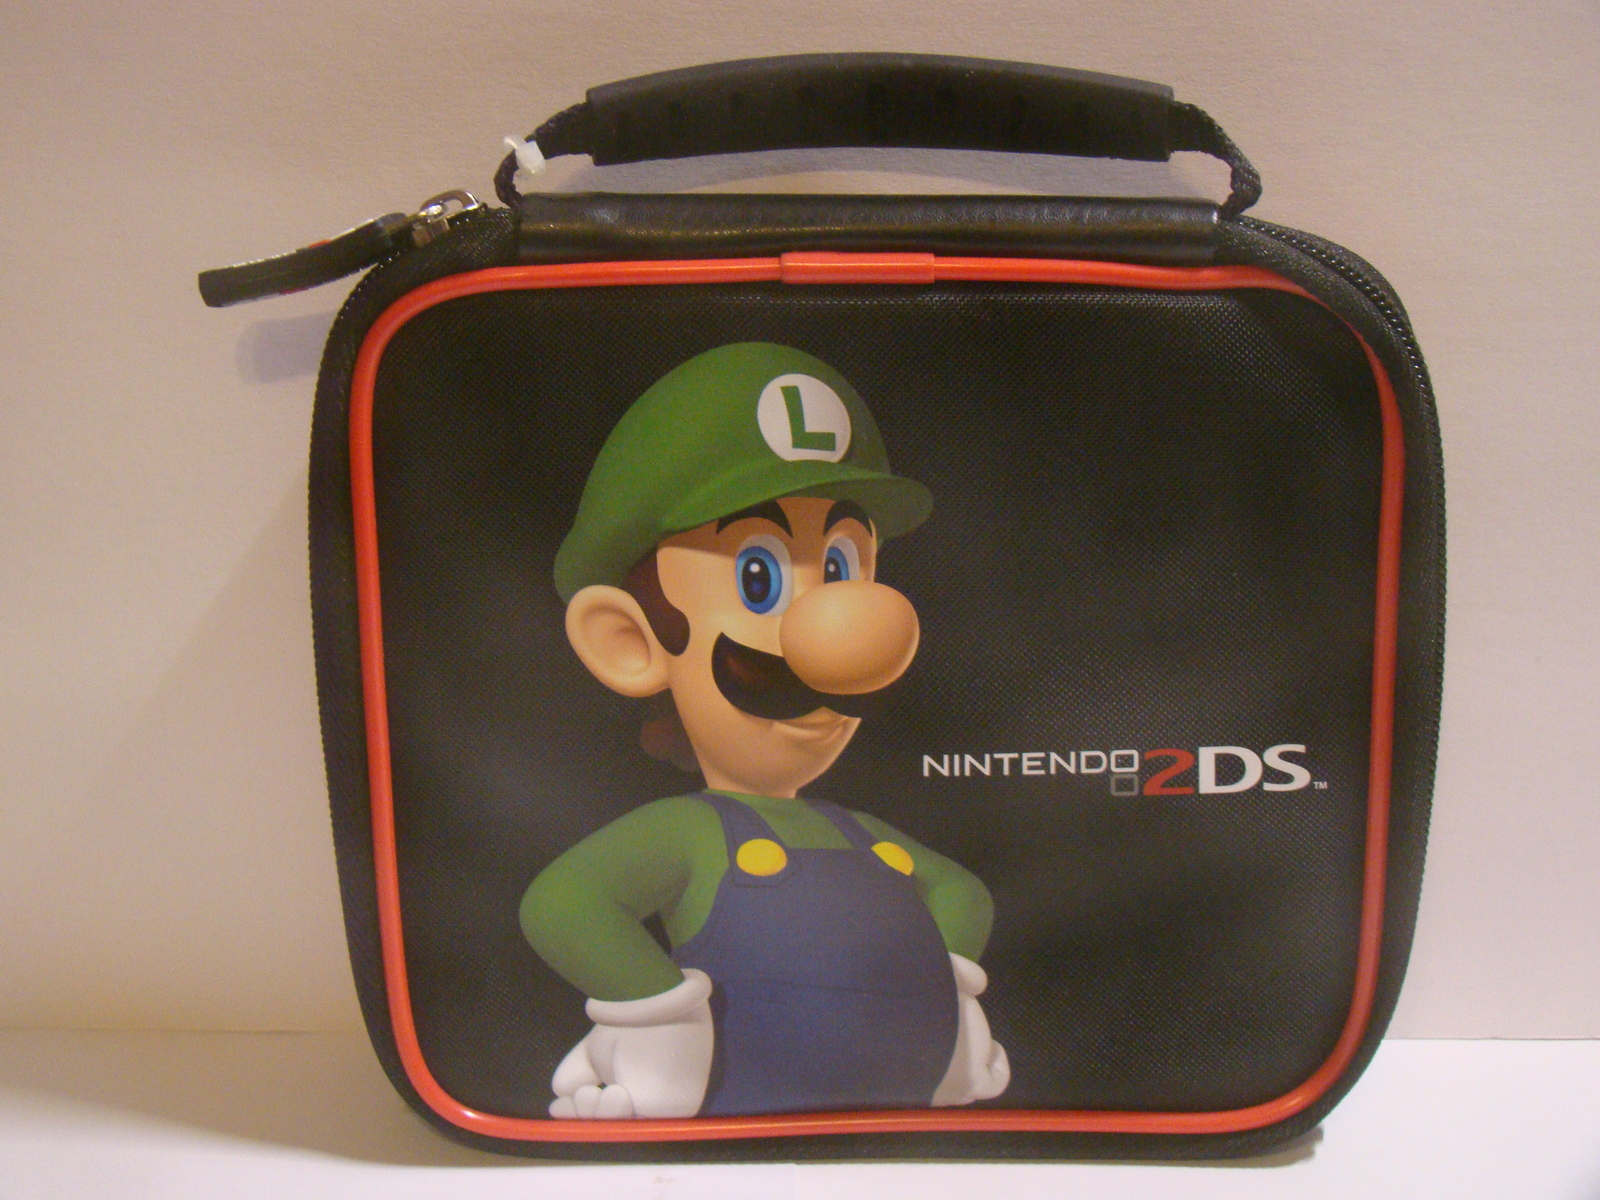 Nintendo 2DS - LUIGI Console & Game Case